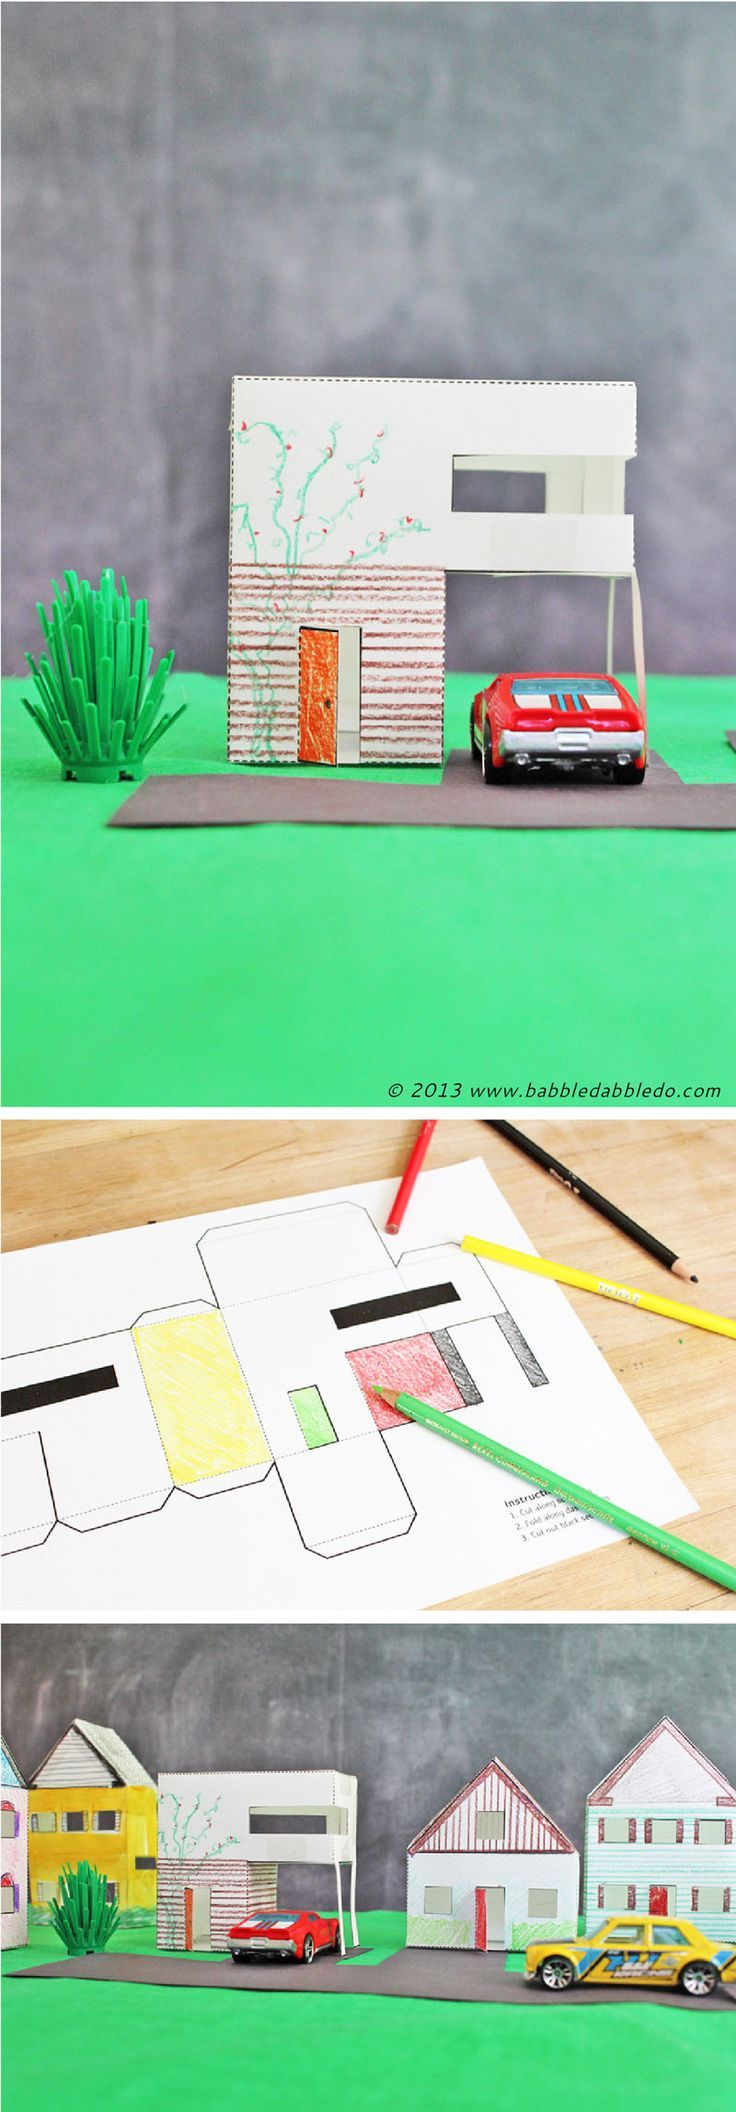 Free printable paper houses that kids can cut and color in. Fun activity to build a village!